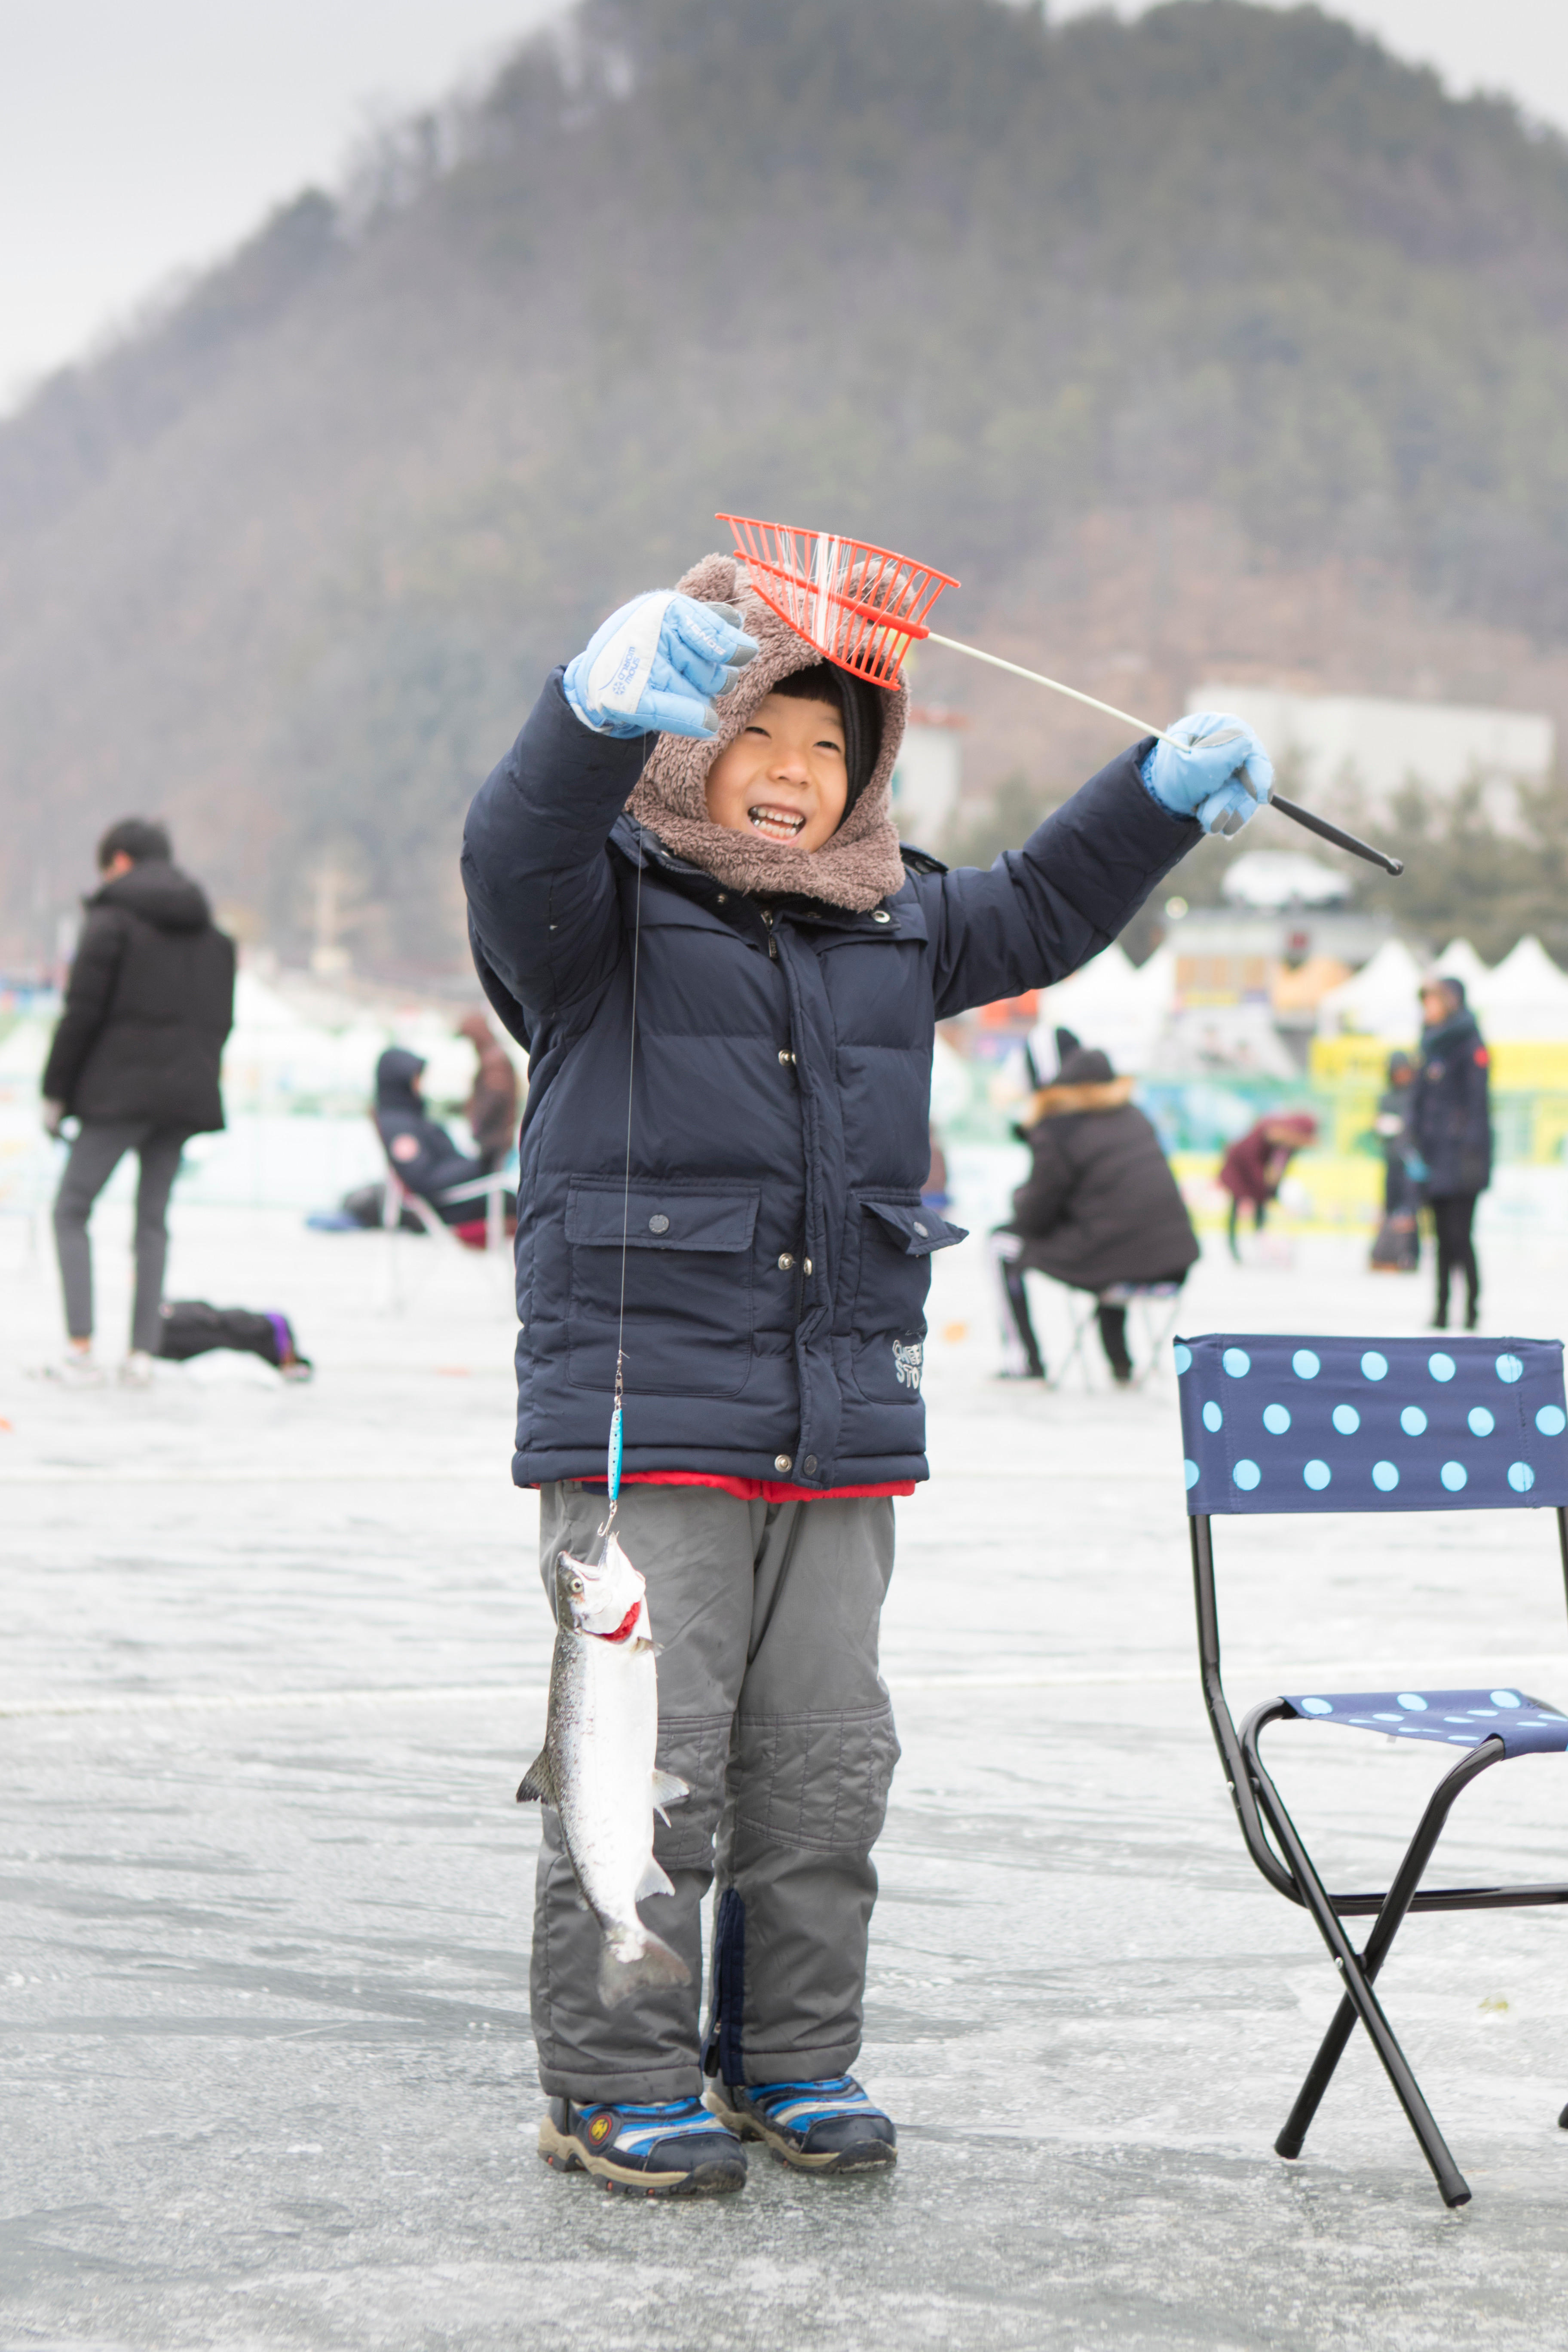 A young boy is happy with the fish he caught during the ice fishing festival at Hwacheon Sancheoneo in the Gangwon-do region of South Korea.  The Hwacheon Sancheoneo Ice Festival is a tradition for Korean people. Every year in January crowds gather at the